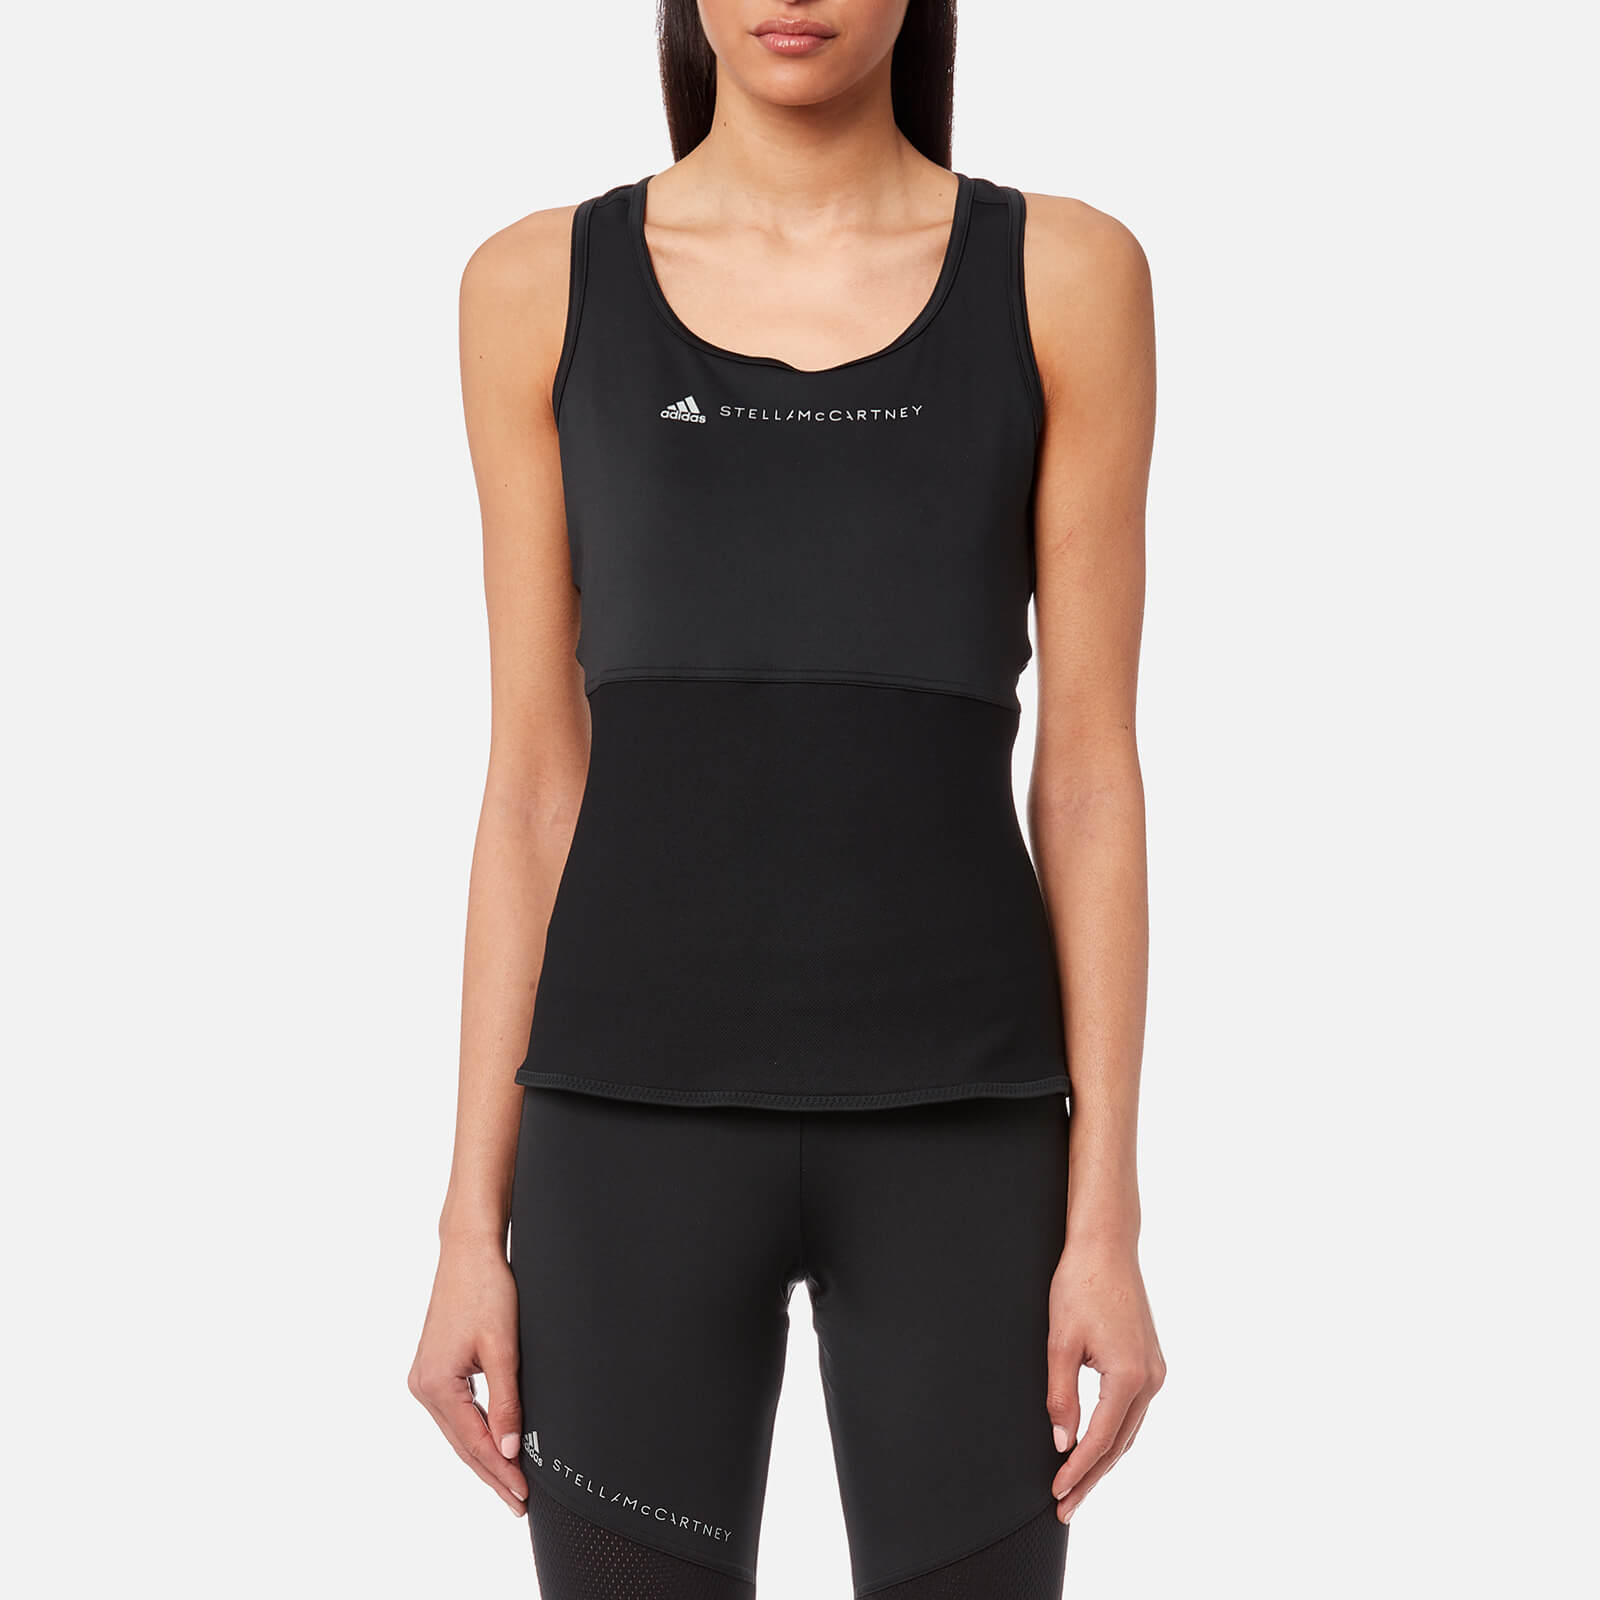 4ae6de8d8bfd73 adidas by Stella McCartney Women's Essential Tank Top - Black - Free UK  Delivery over £50